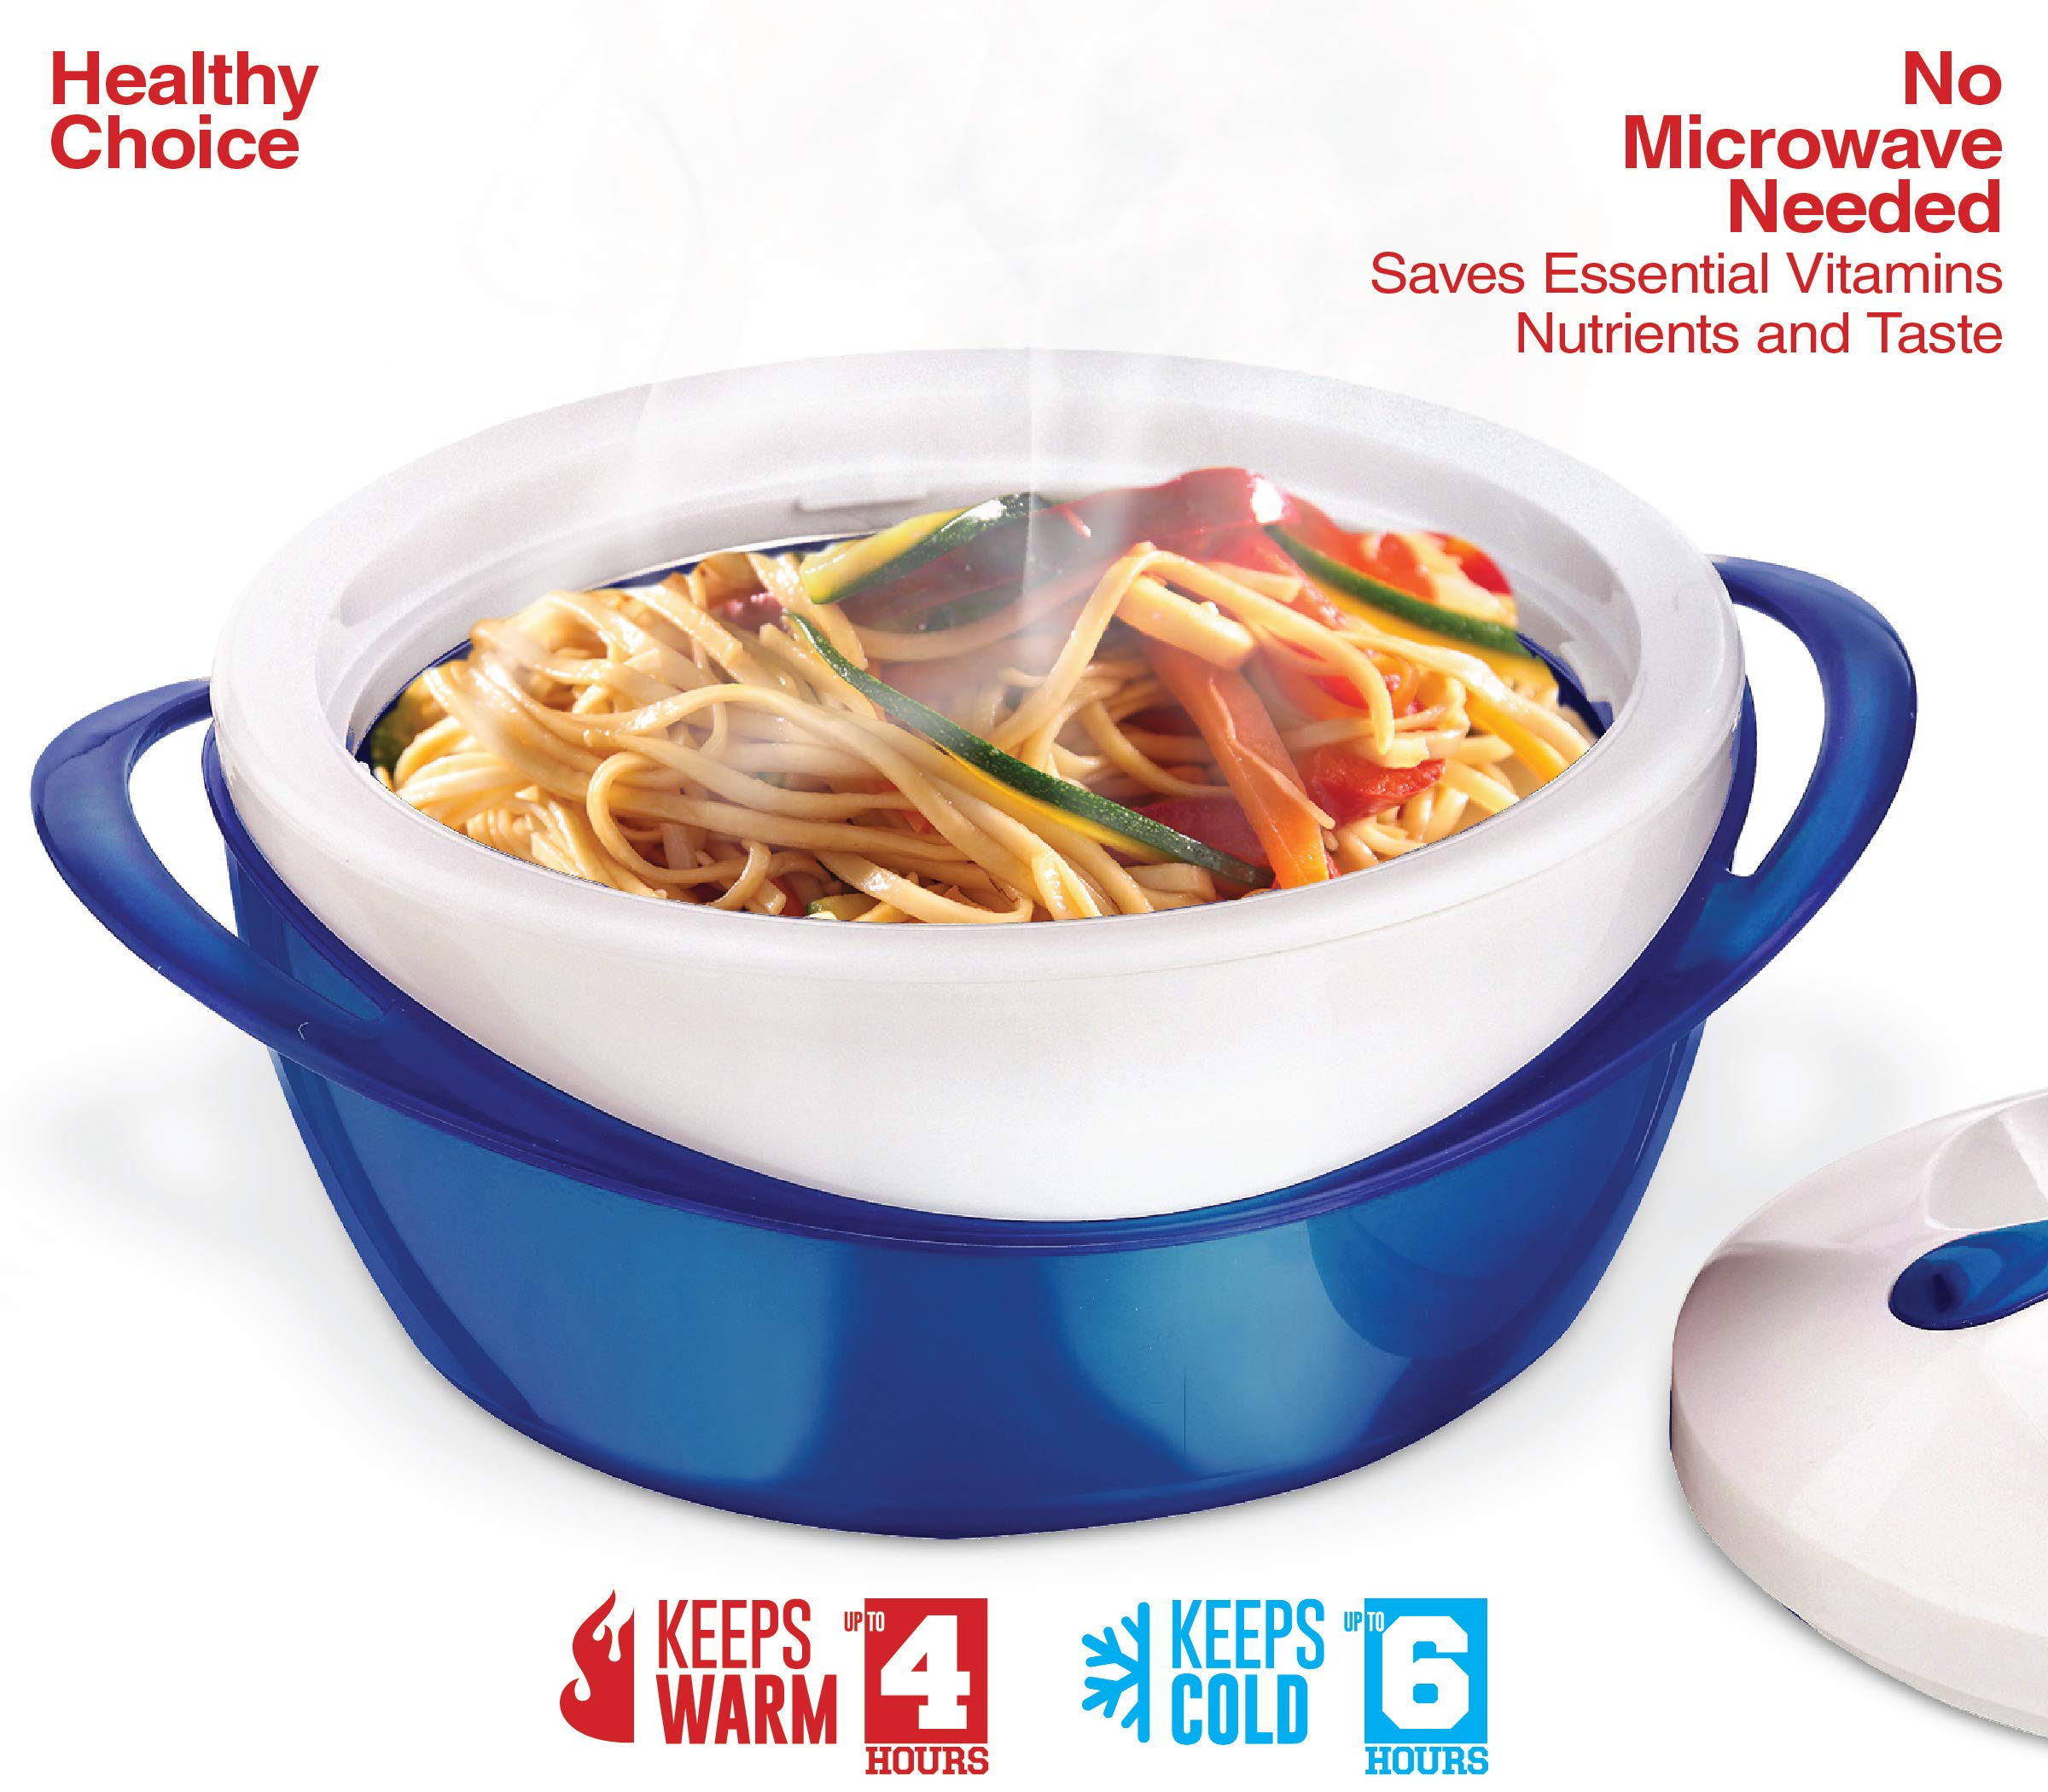 Pinnacle Casserole Dish - Large Soup and Salad Bowl - Insulated Serving Bowl With Lid (3.6 qt, Blue) by Pinnacle Thermoware (Image #7)